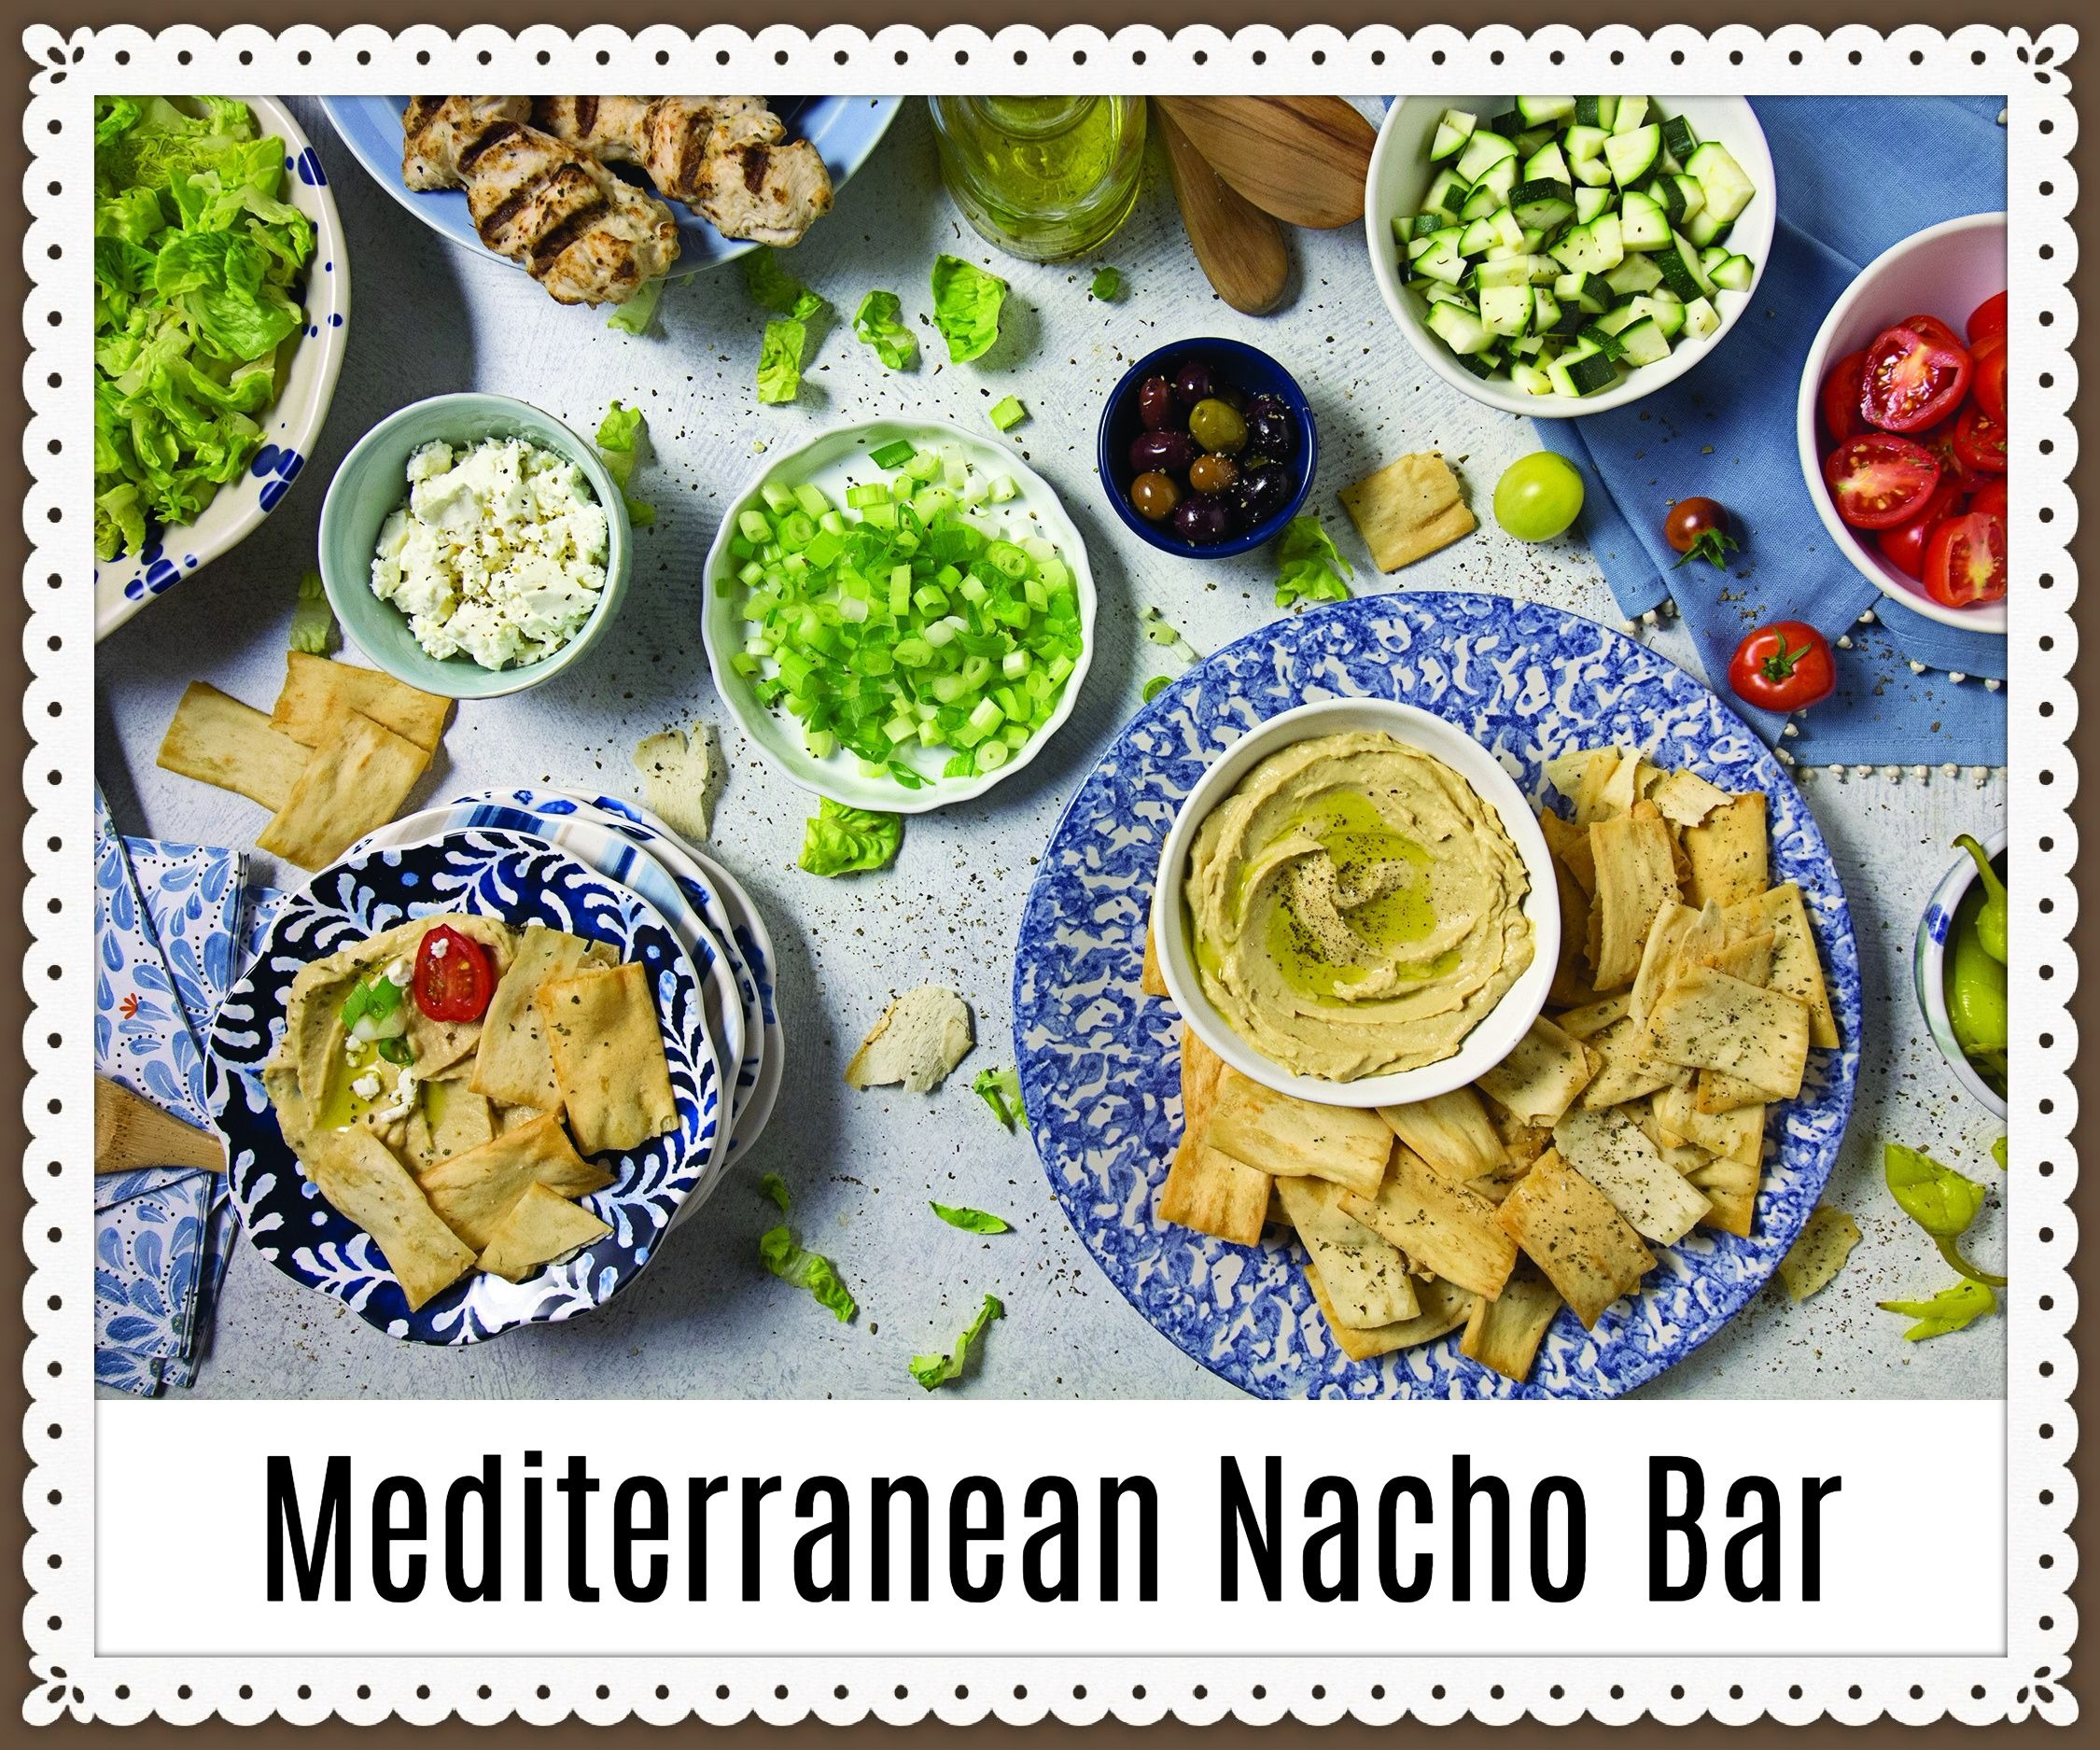 Tasty Cooking: Mediterranean Nacho Bar